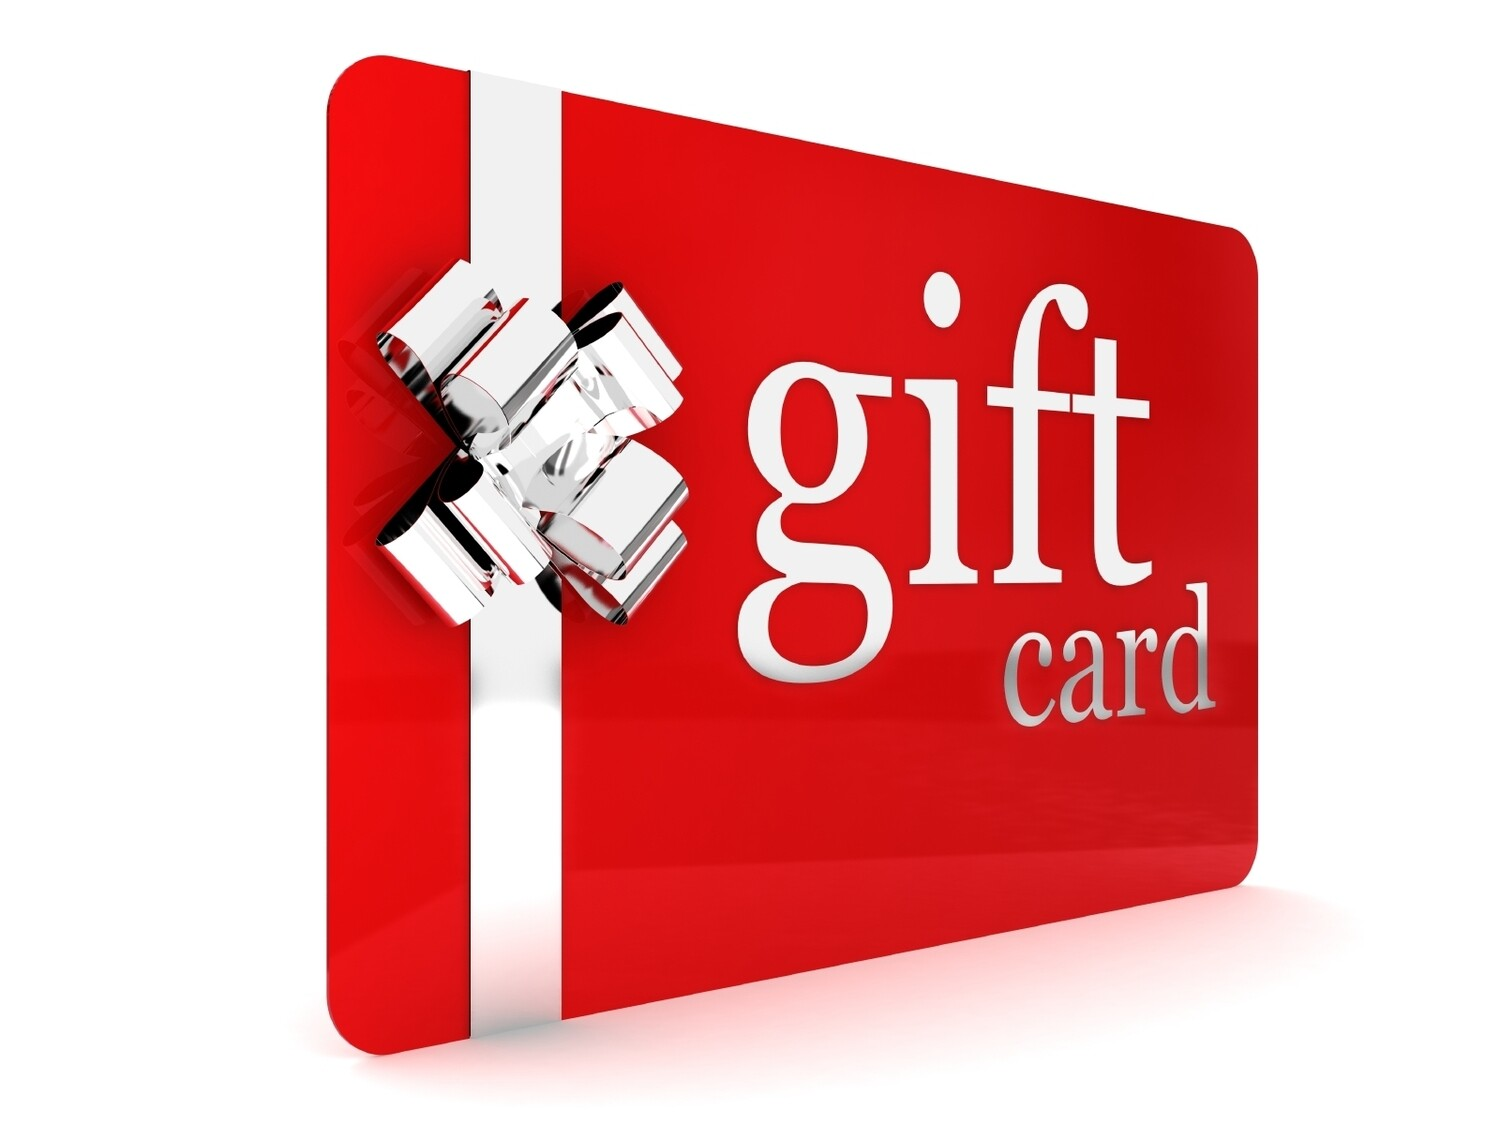 GIFT CARD-REGULAR FACIAL